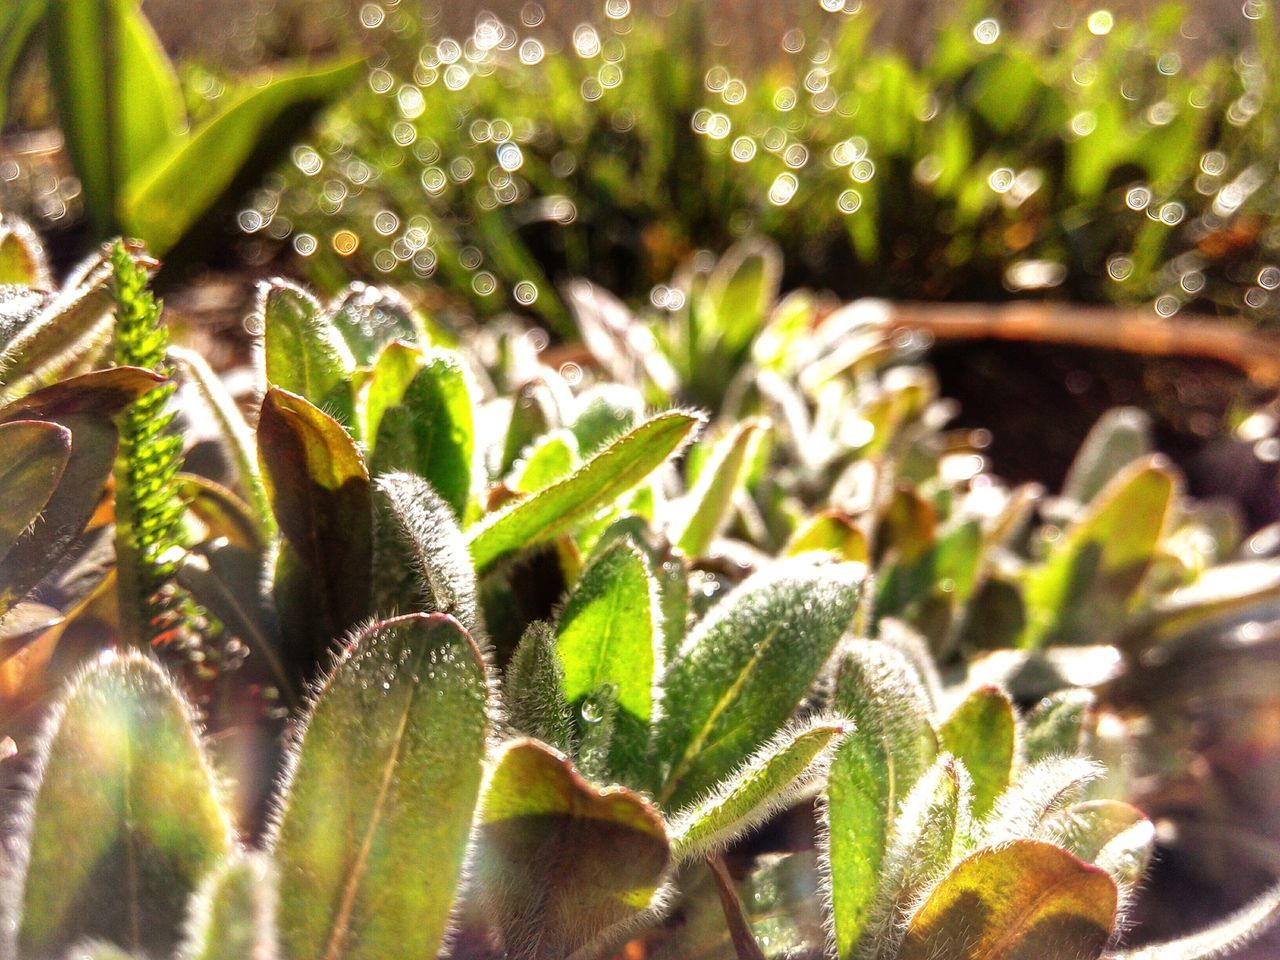 Leaves Growing Perennial Macro Morning Morning Sun Dew Dew Drops Bokeh Garden Garden Photography Hairy Leaves Showcase April